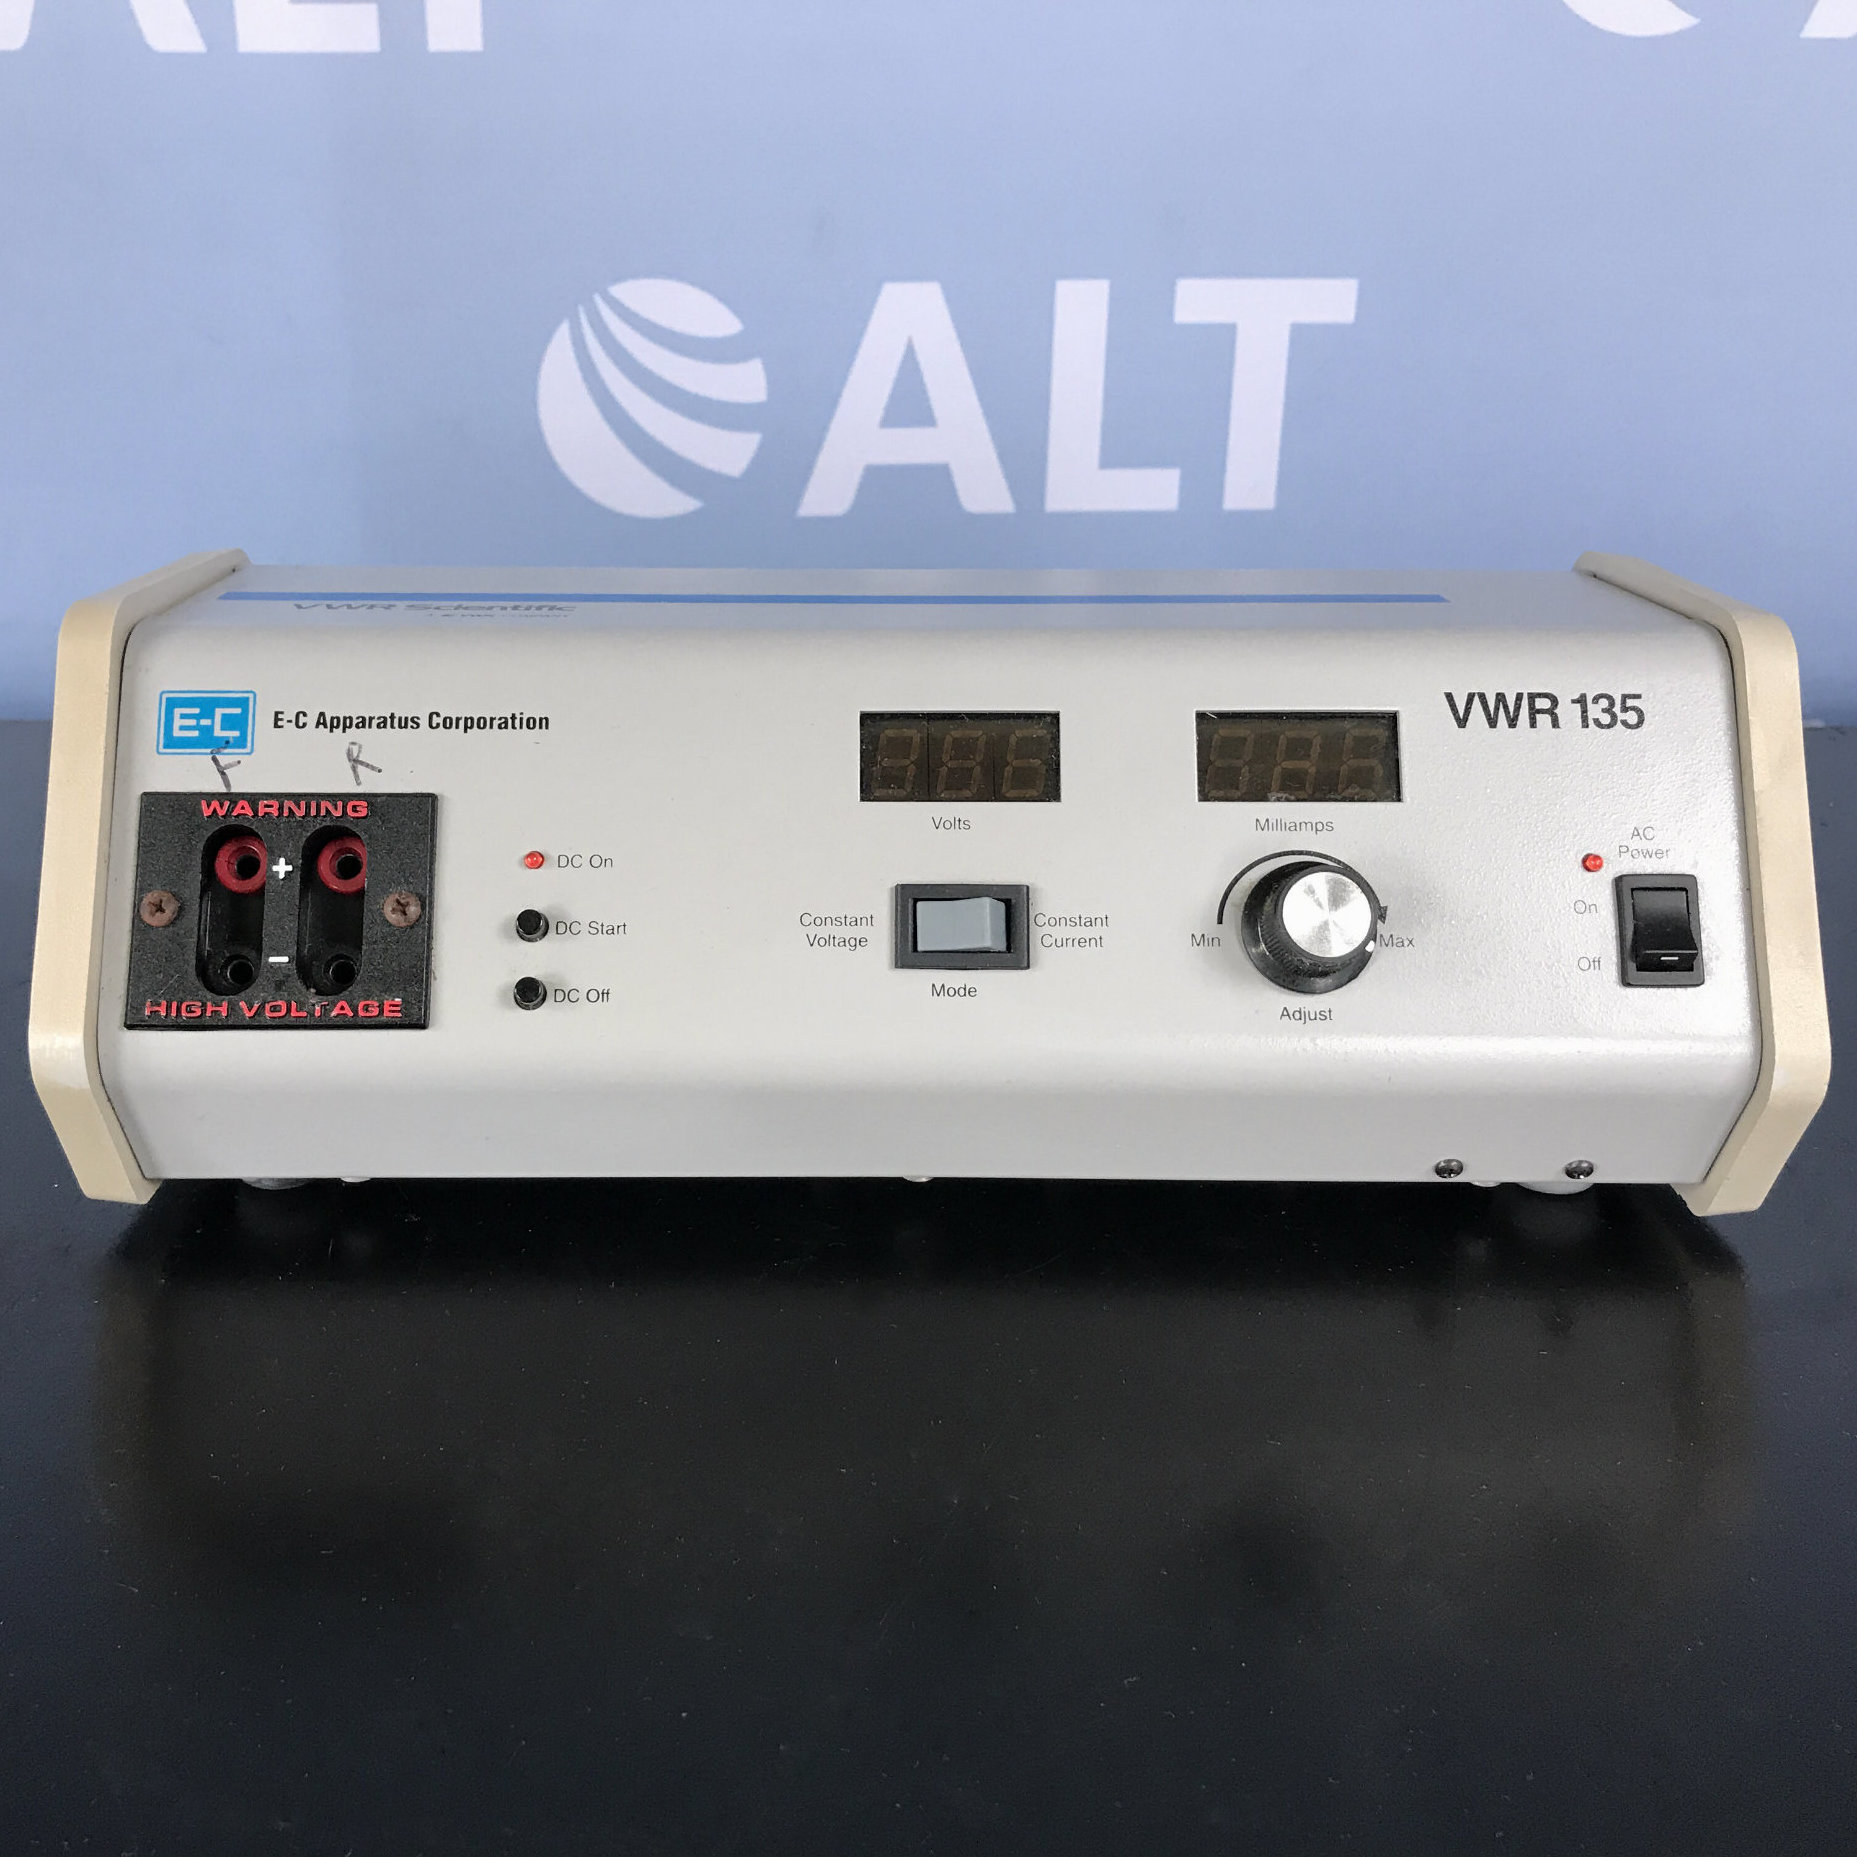 VWR 135 Electrophoresis Power Supply Image